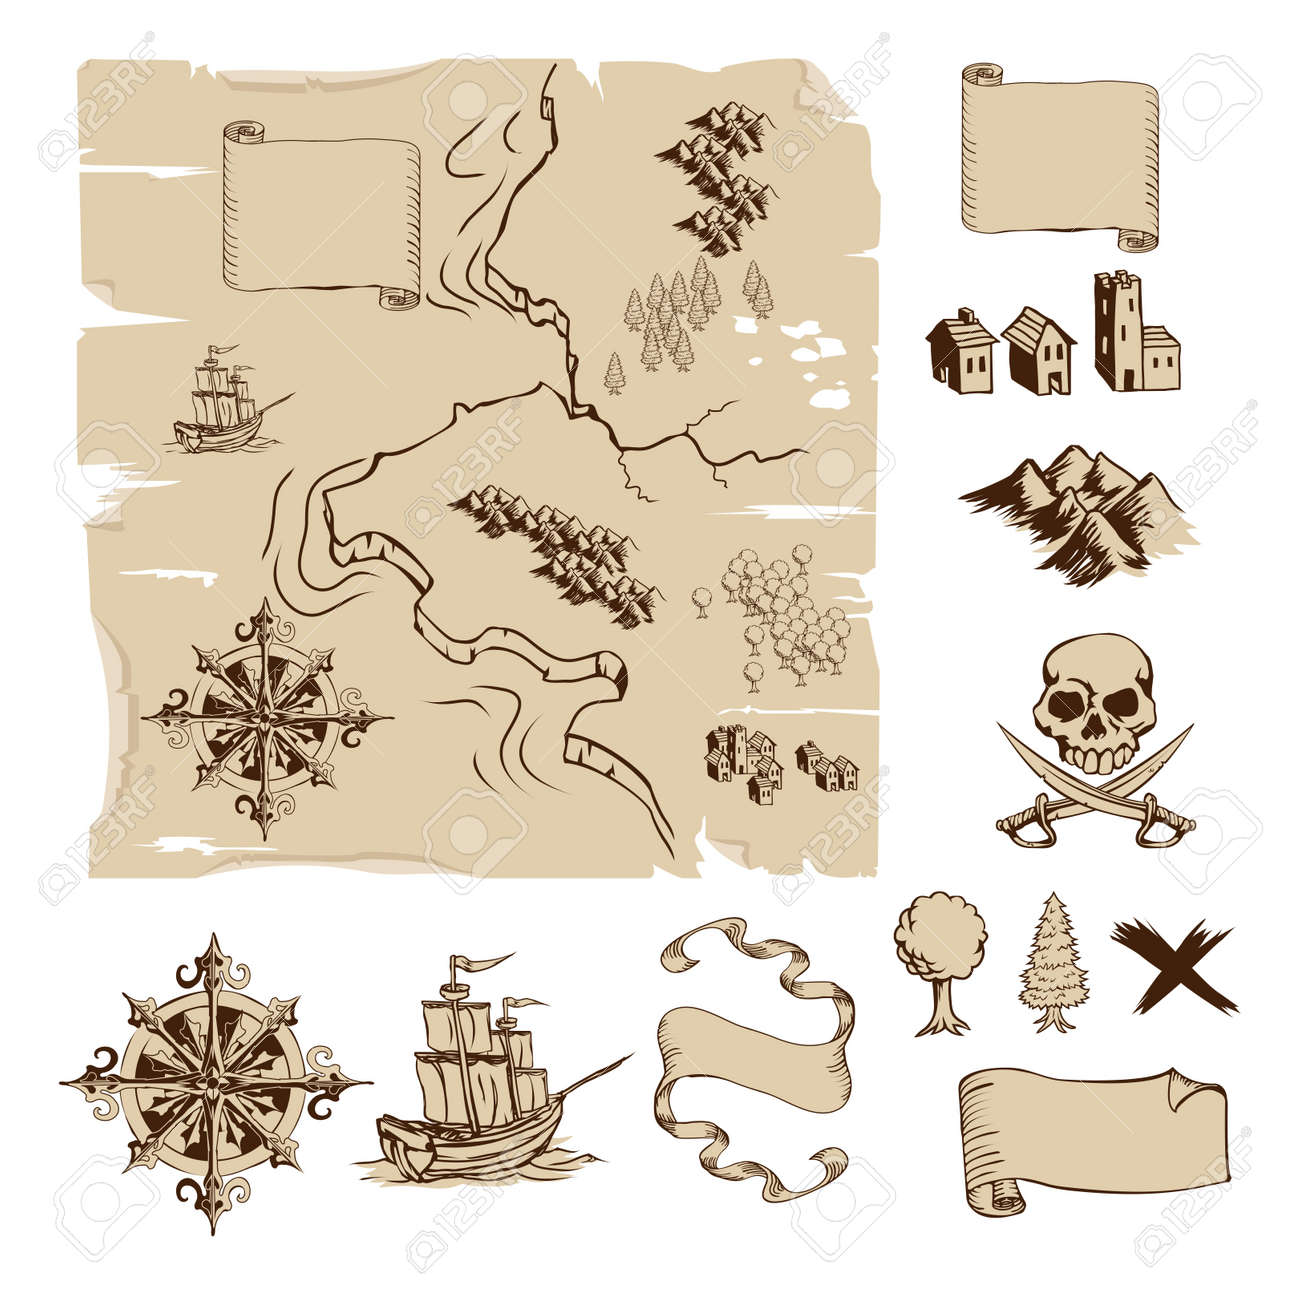 example map and design elements to make your own fantasy or treasure